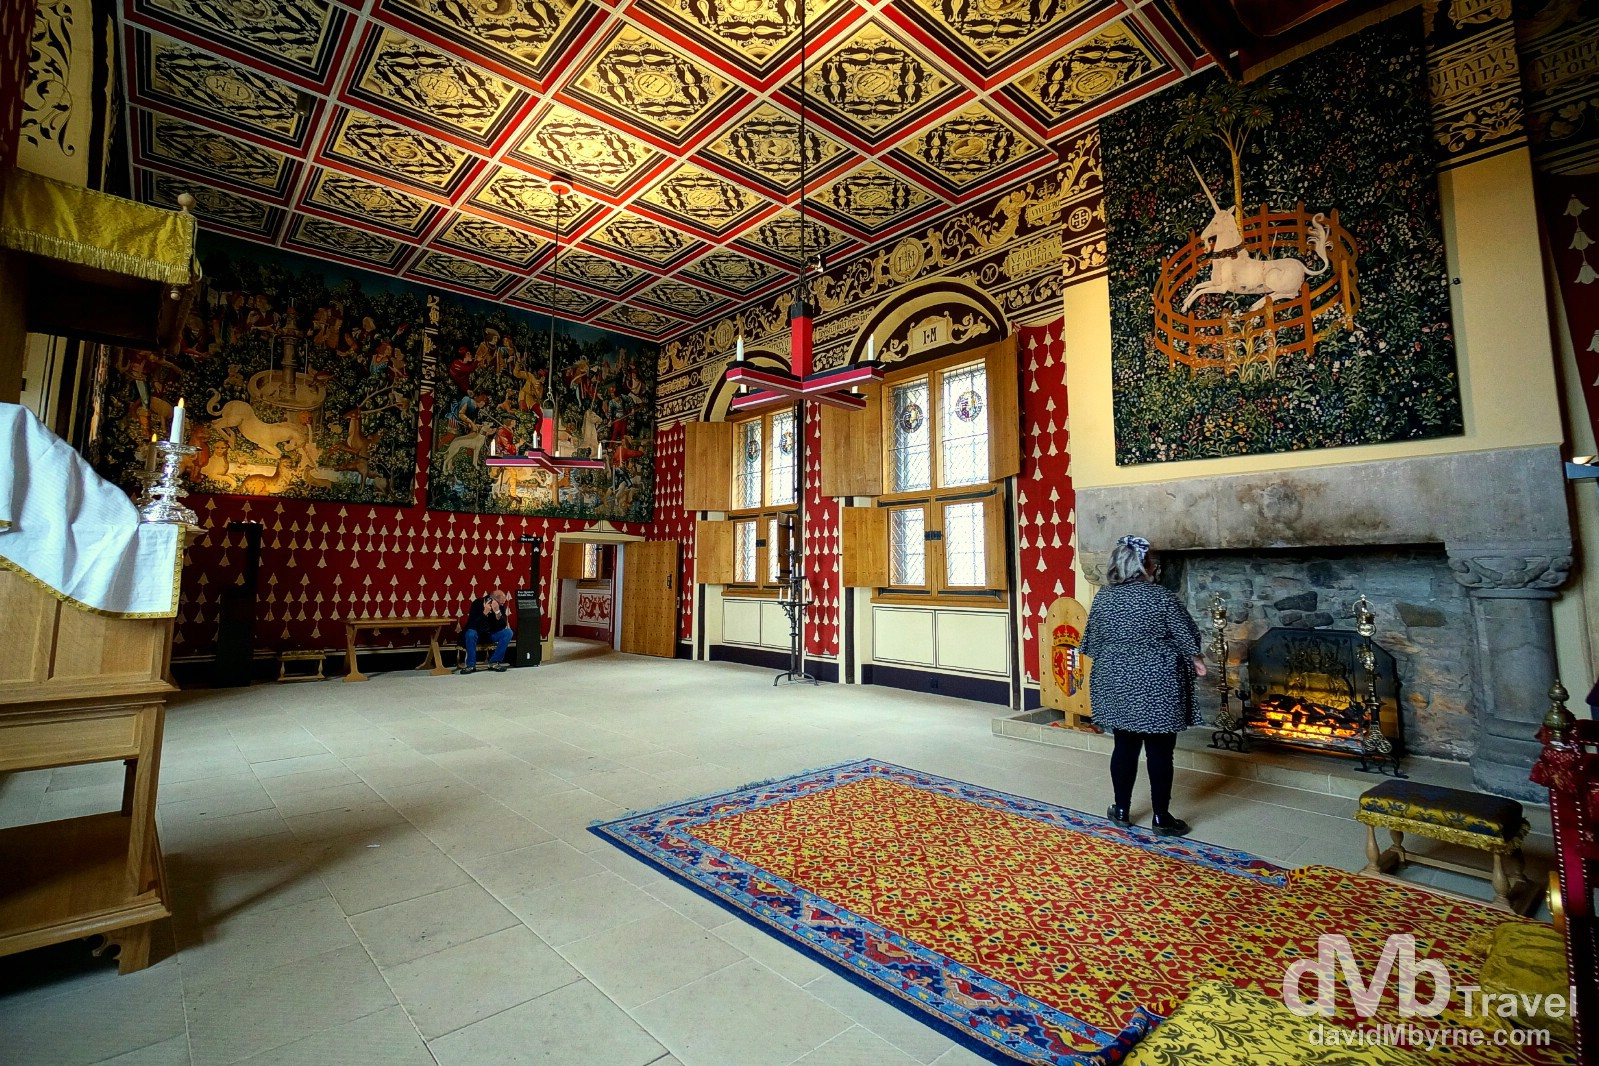 A restored room in the Place of Stirling Castle, Stirling, Scotland. September 12, 2014.